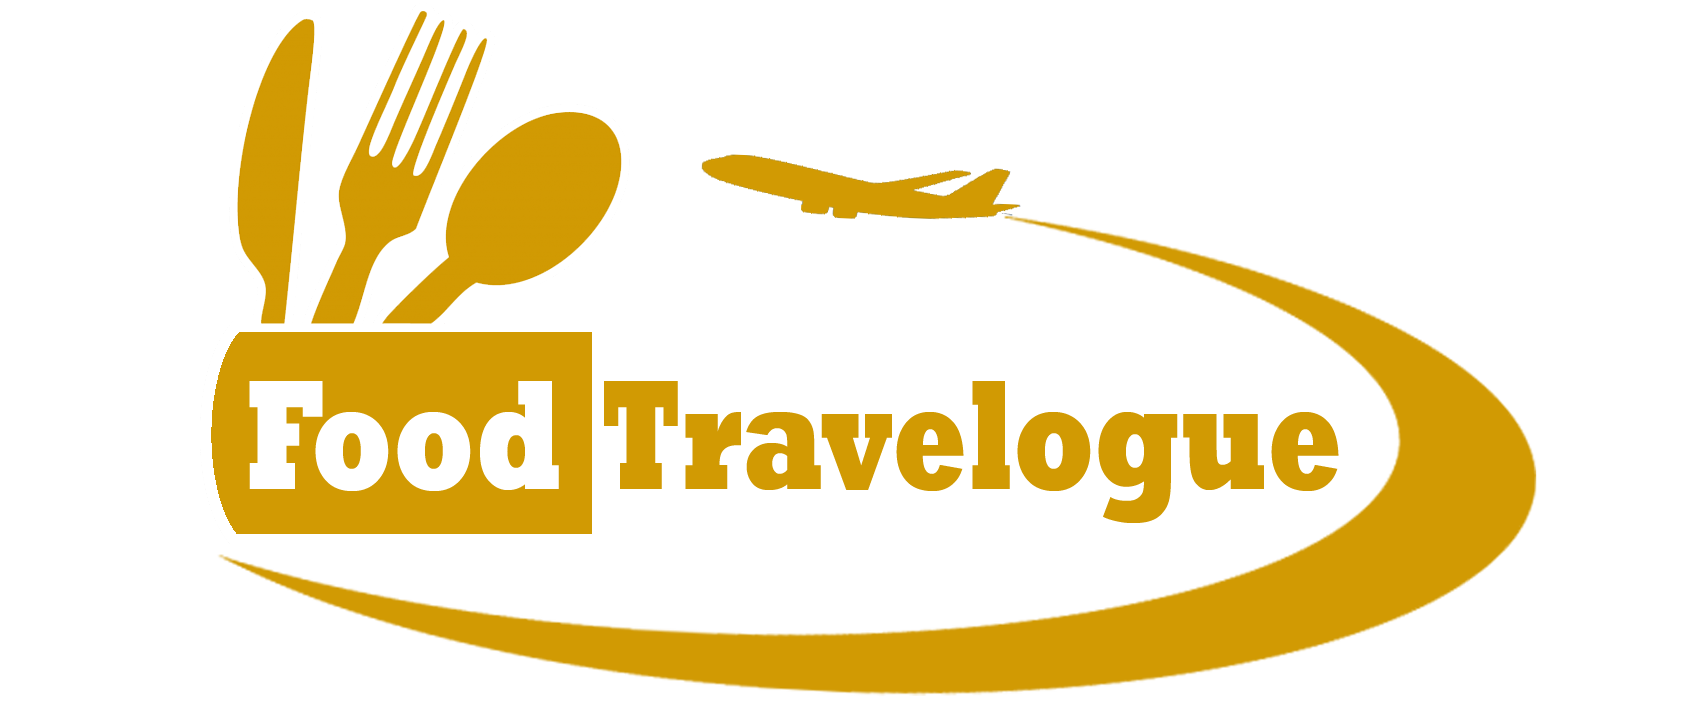 FTL|Food Travelogue - Portal for Food, Travel and Leisure